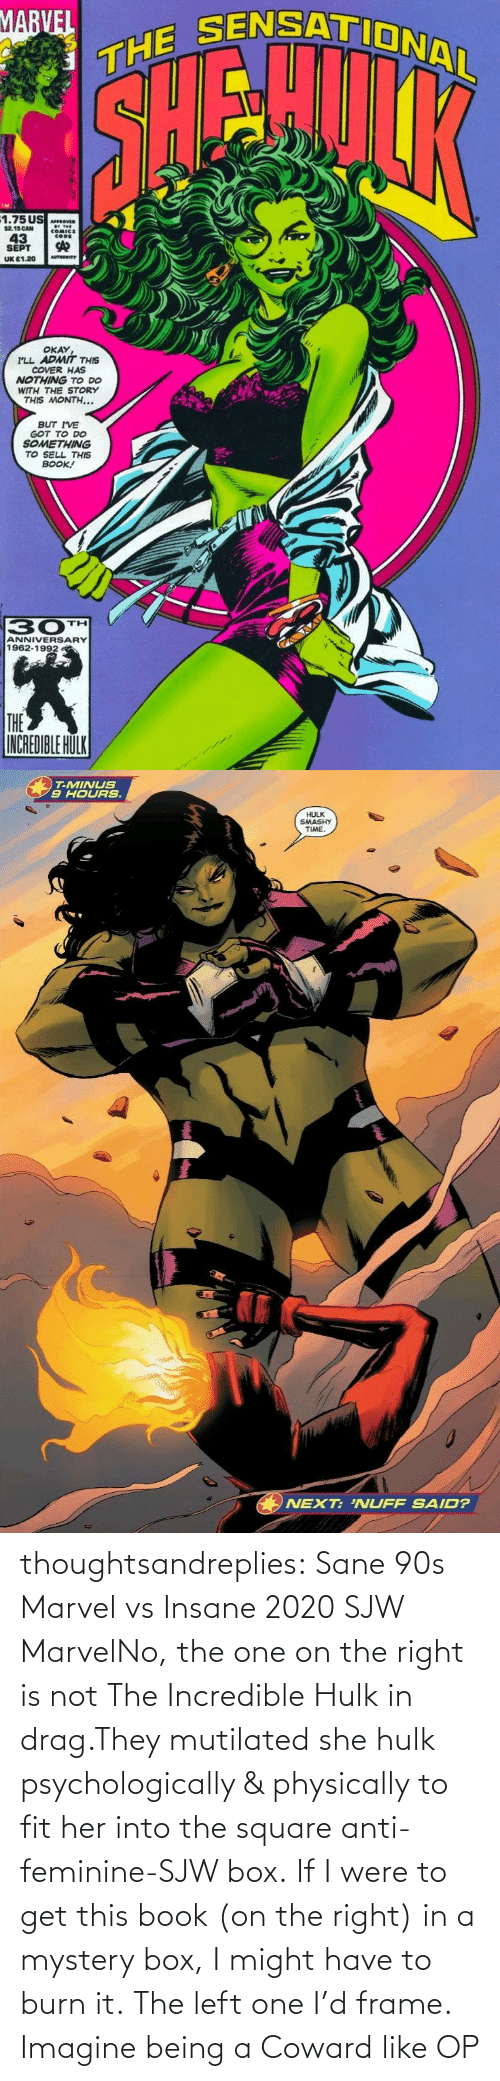 Being A: thoughtsandreplies:  Sane 90s Marvel vs Insane 2020 SJW MarvelNo, the one on the right is not The Incredible Hulk in drag.They mutilated she hulk psychologically & physically to fit her into the square anti-feminine-SJW box. If I were to get this book (on the right) in a mystery box, I might have to burn it. The left one I'd frame.    Imagine being a Coward like OP